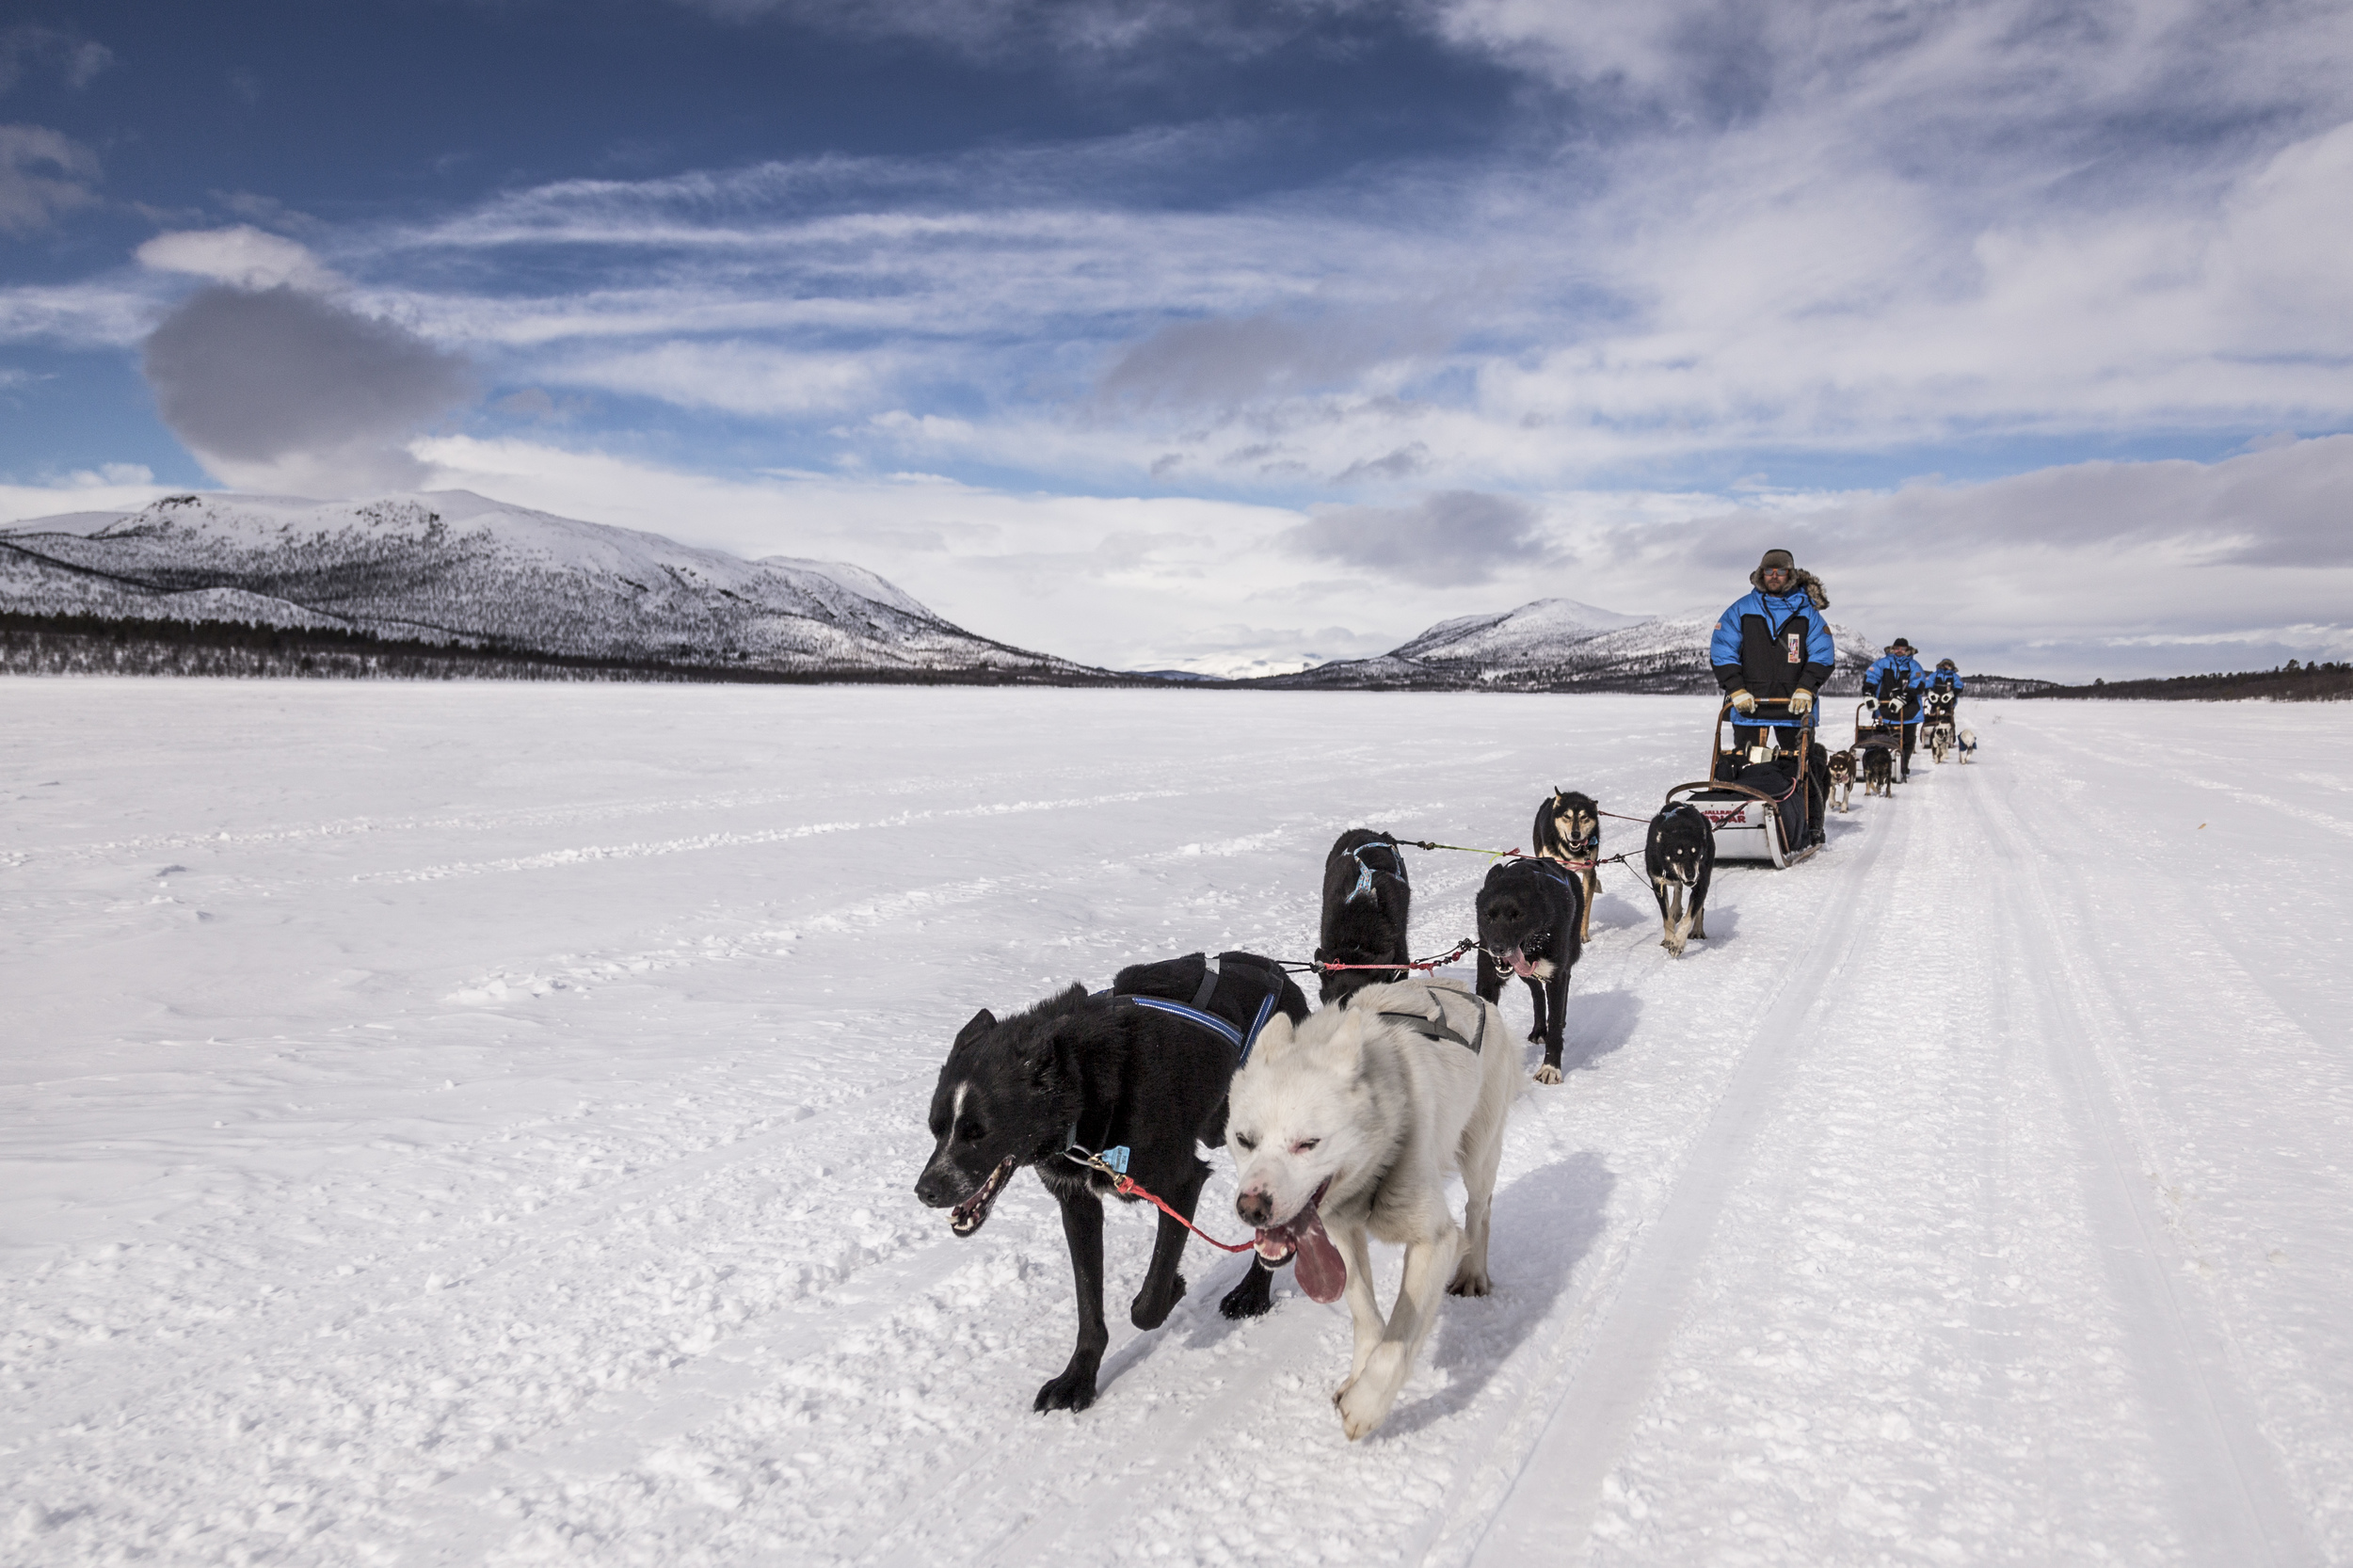 The flat frozen lakes, although windy, provide an opportunity for dogs and sledders both to relax a bit. It's the forests that require full concentration. (Photo by Håkan Wike for Fjällräven International. All rights reserved.)